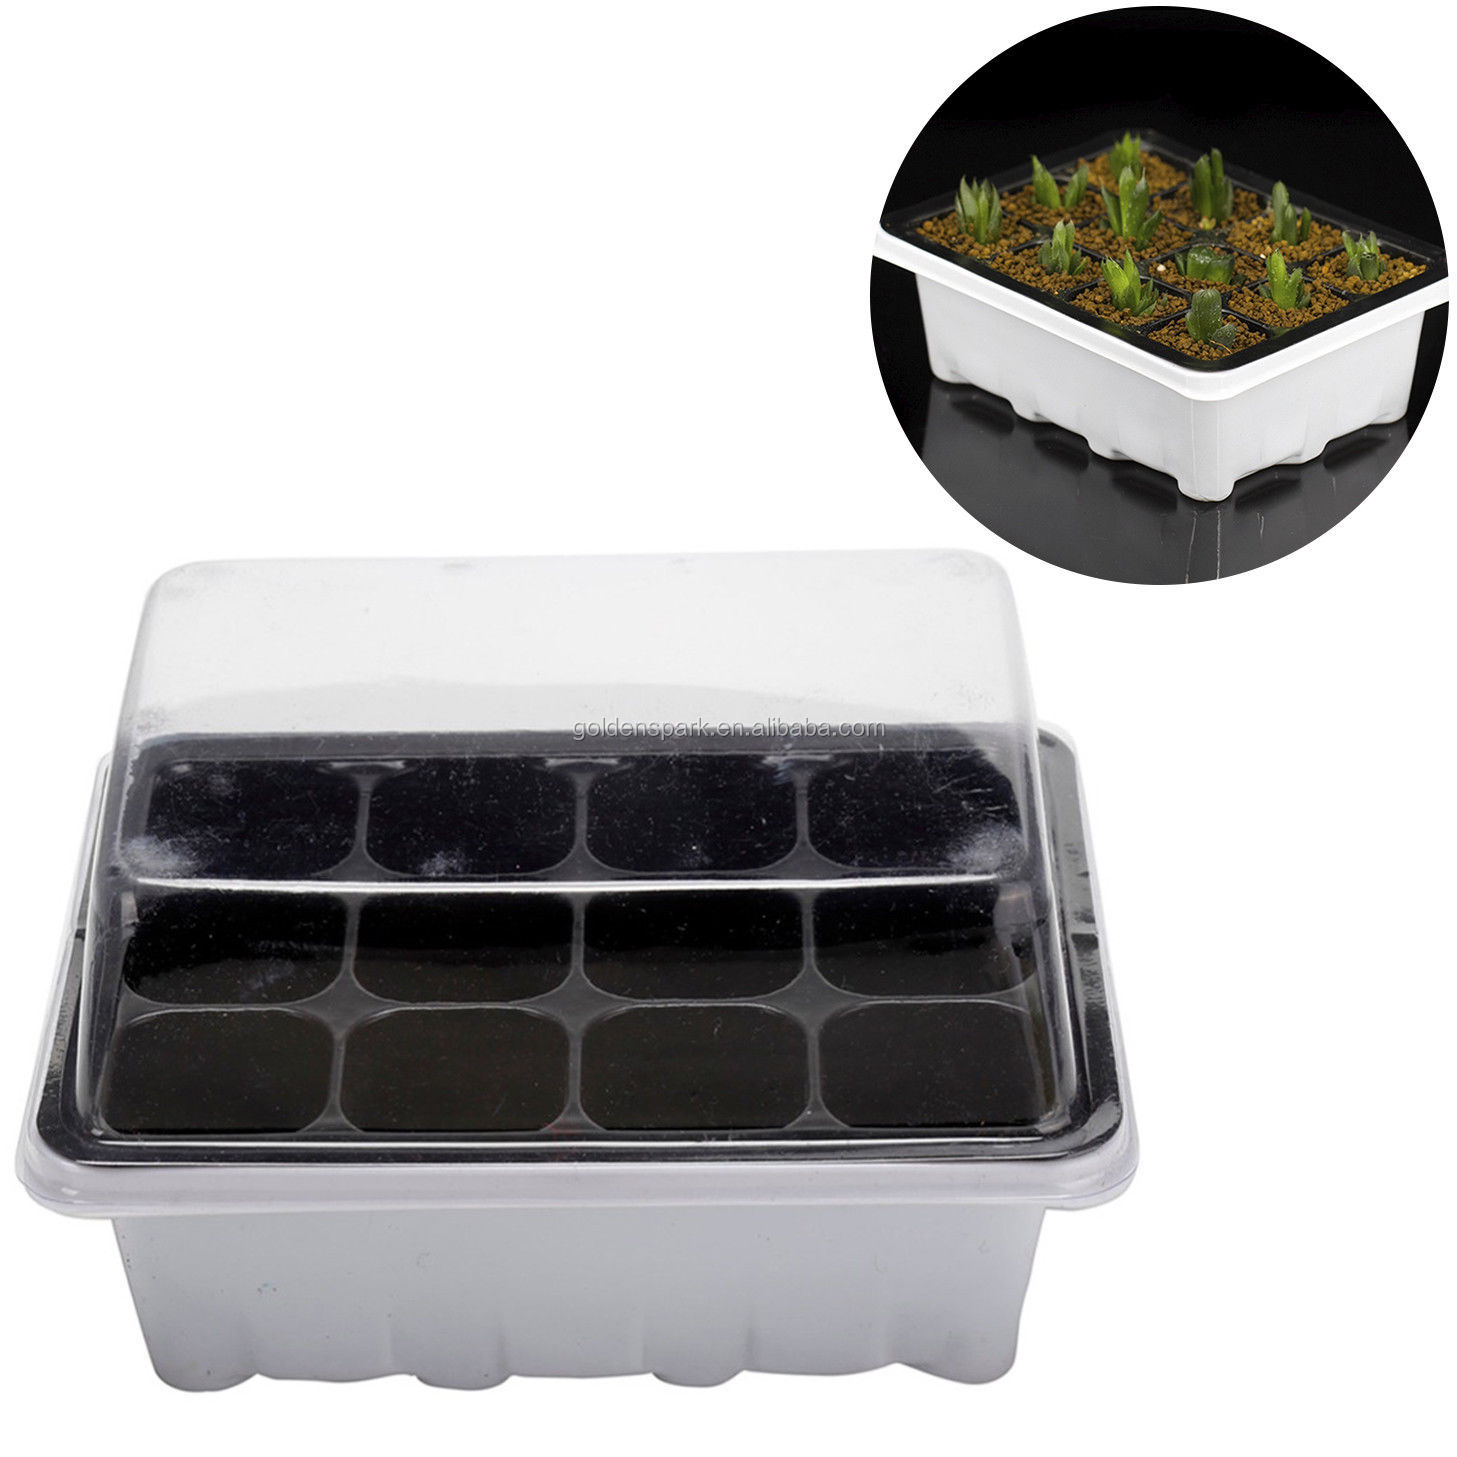 Outdoor Grow Box Garden Tools 12 Cells Hole Nursery Pot 3 pieces Set Plant Seeds